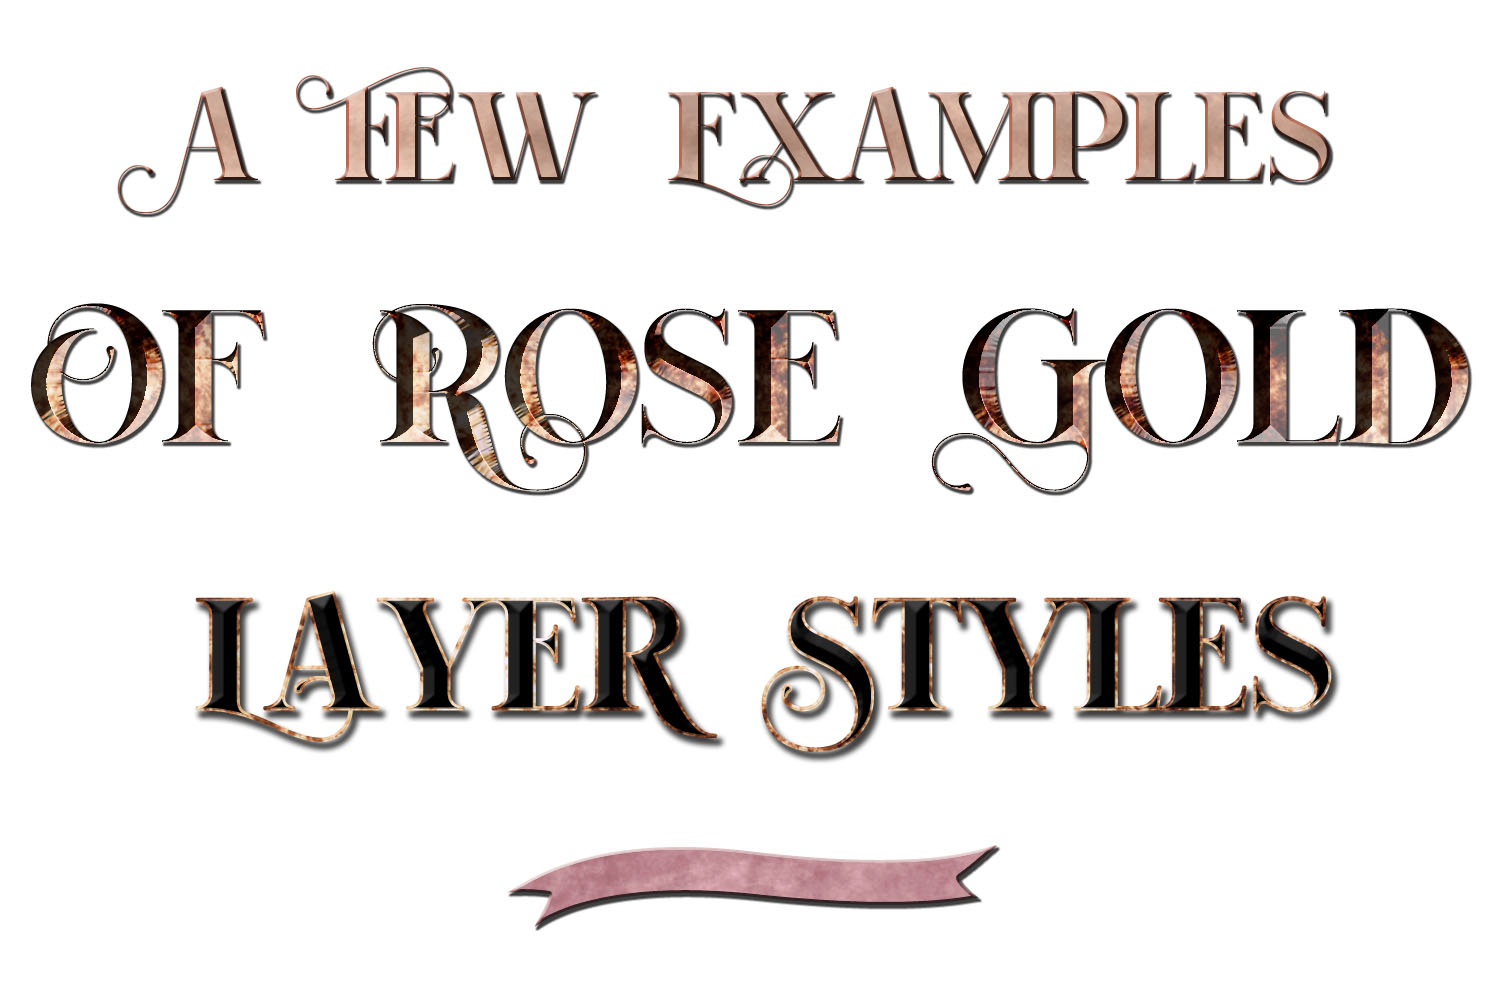 20 Rose Gold Metallic Layer Styles for Photoshop example image 2